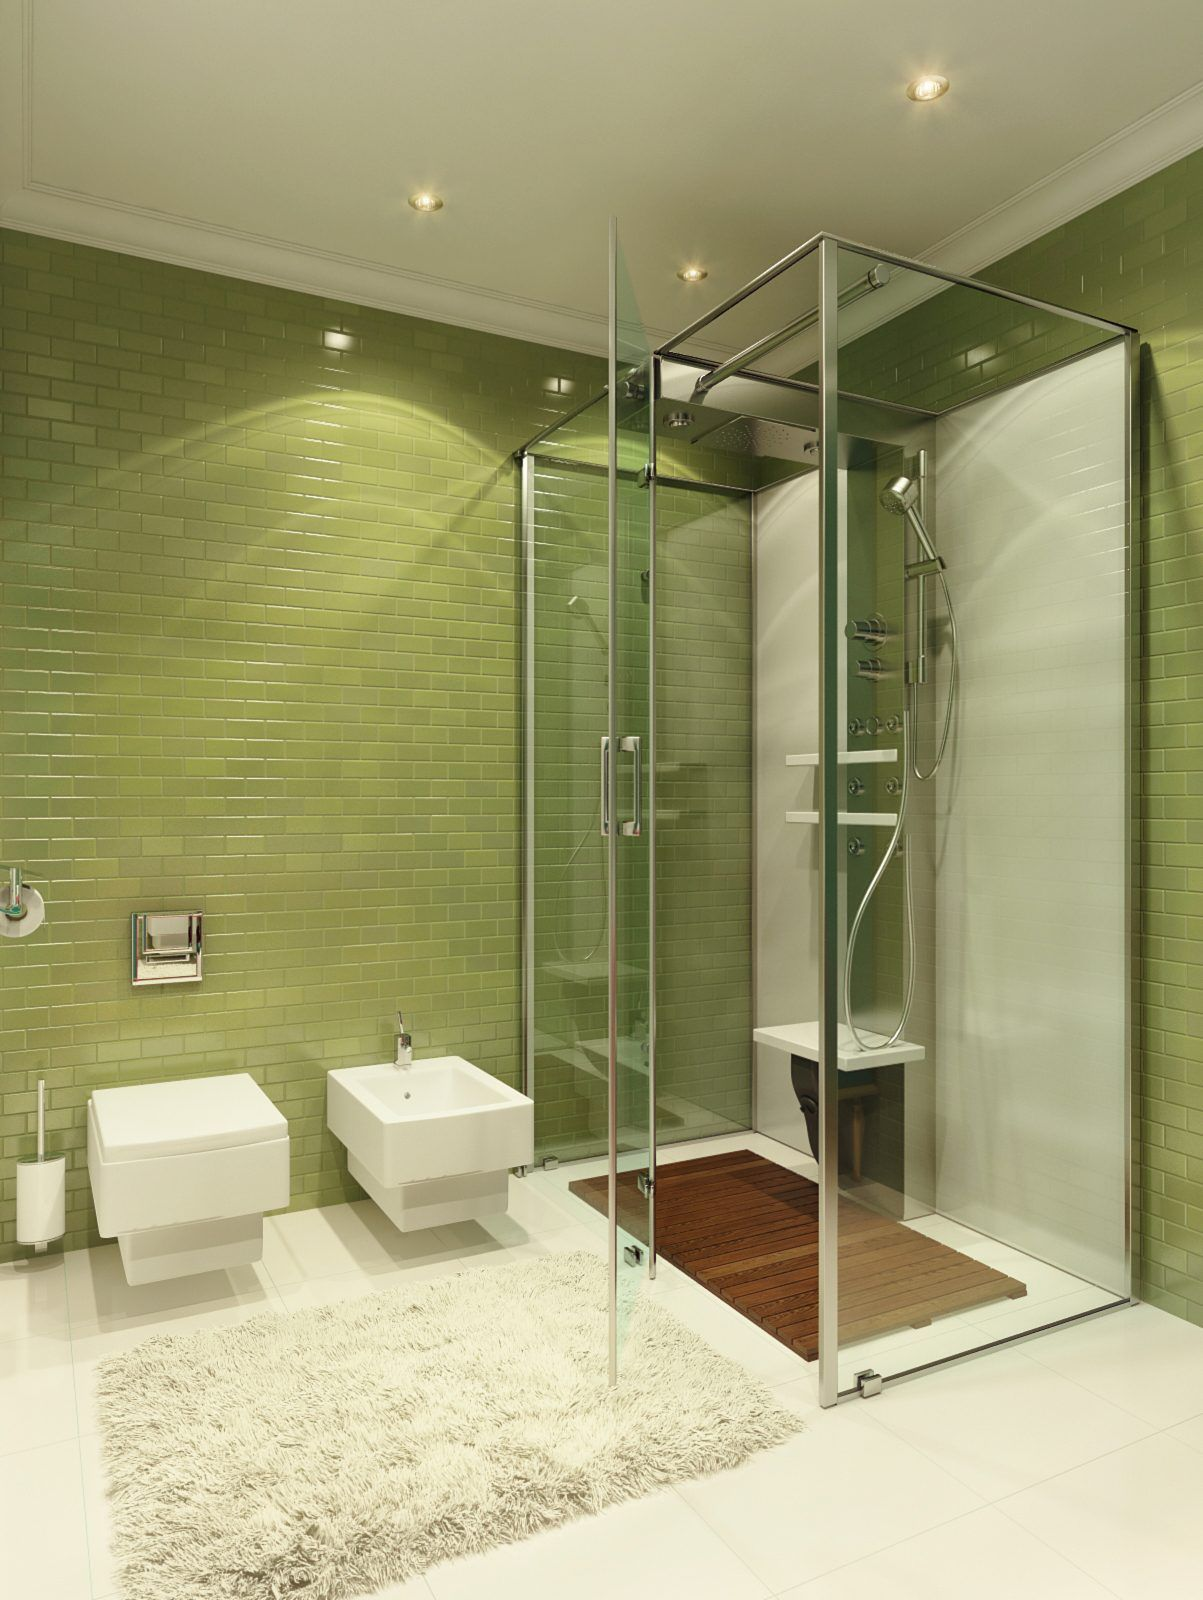 Attractive Renew Your Small Bathroom With Modern Decor In Green! #Bathroom #Decor Idea